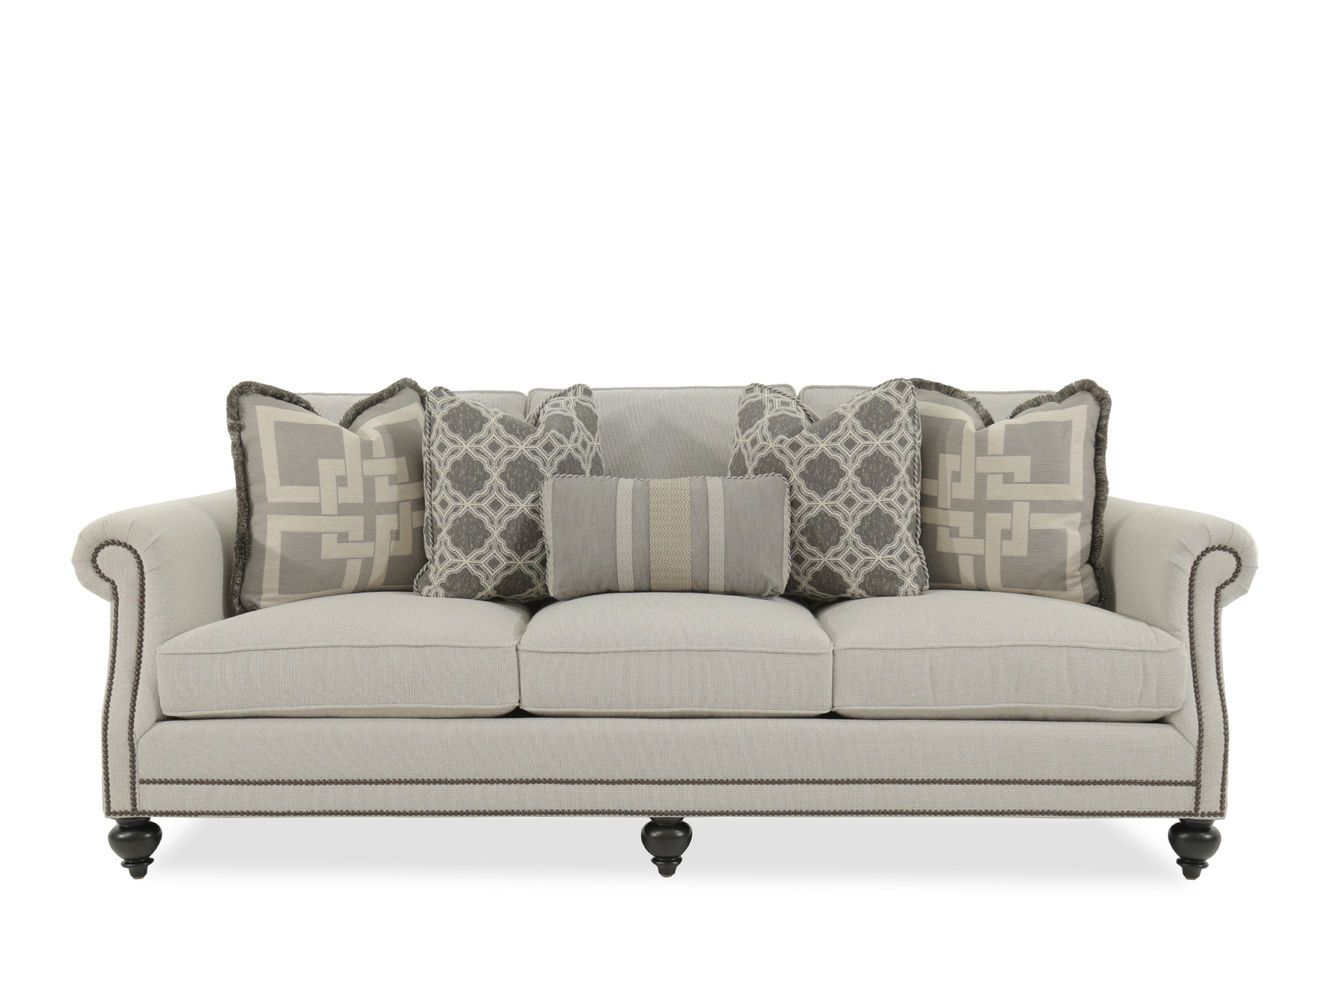 Bernhardt Brae Beige Sofa Mathis Brothers Furniture Rolled Arm